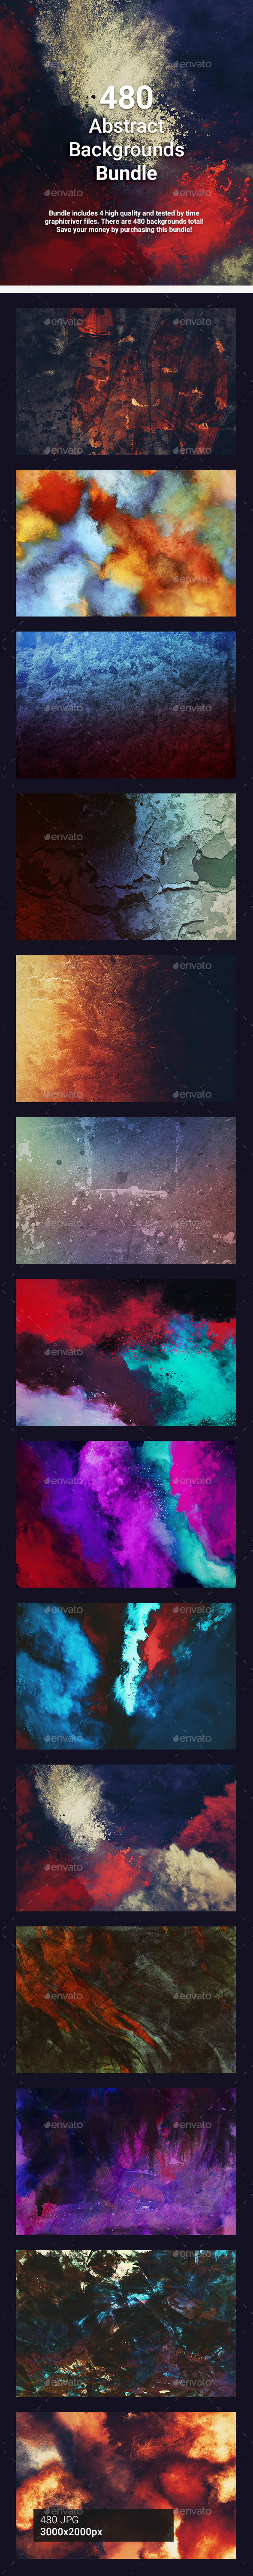 480 Abstract Backgrounds Bundle - Abstract Backgrounds